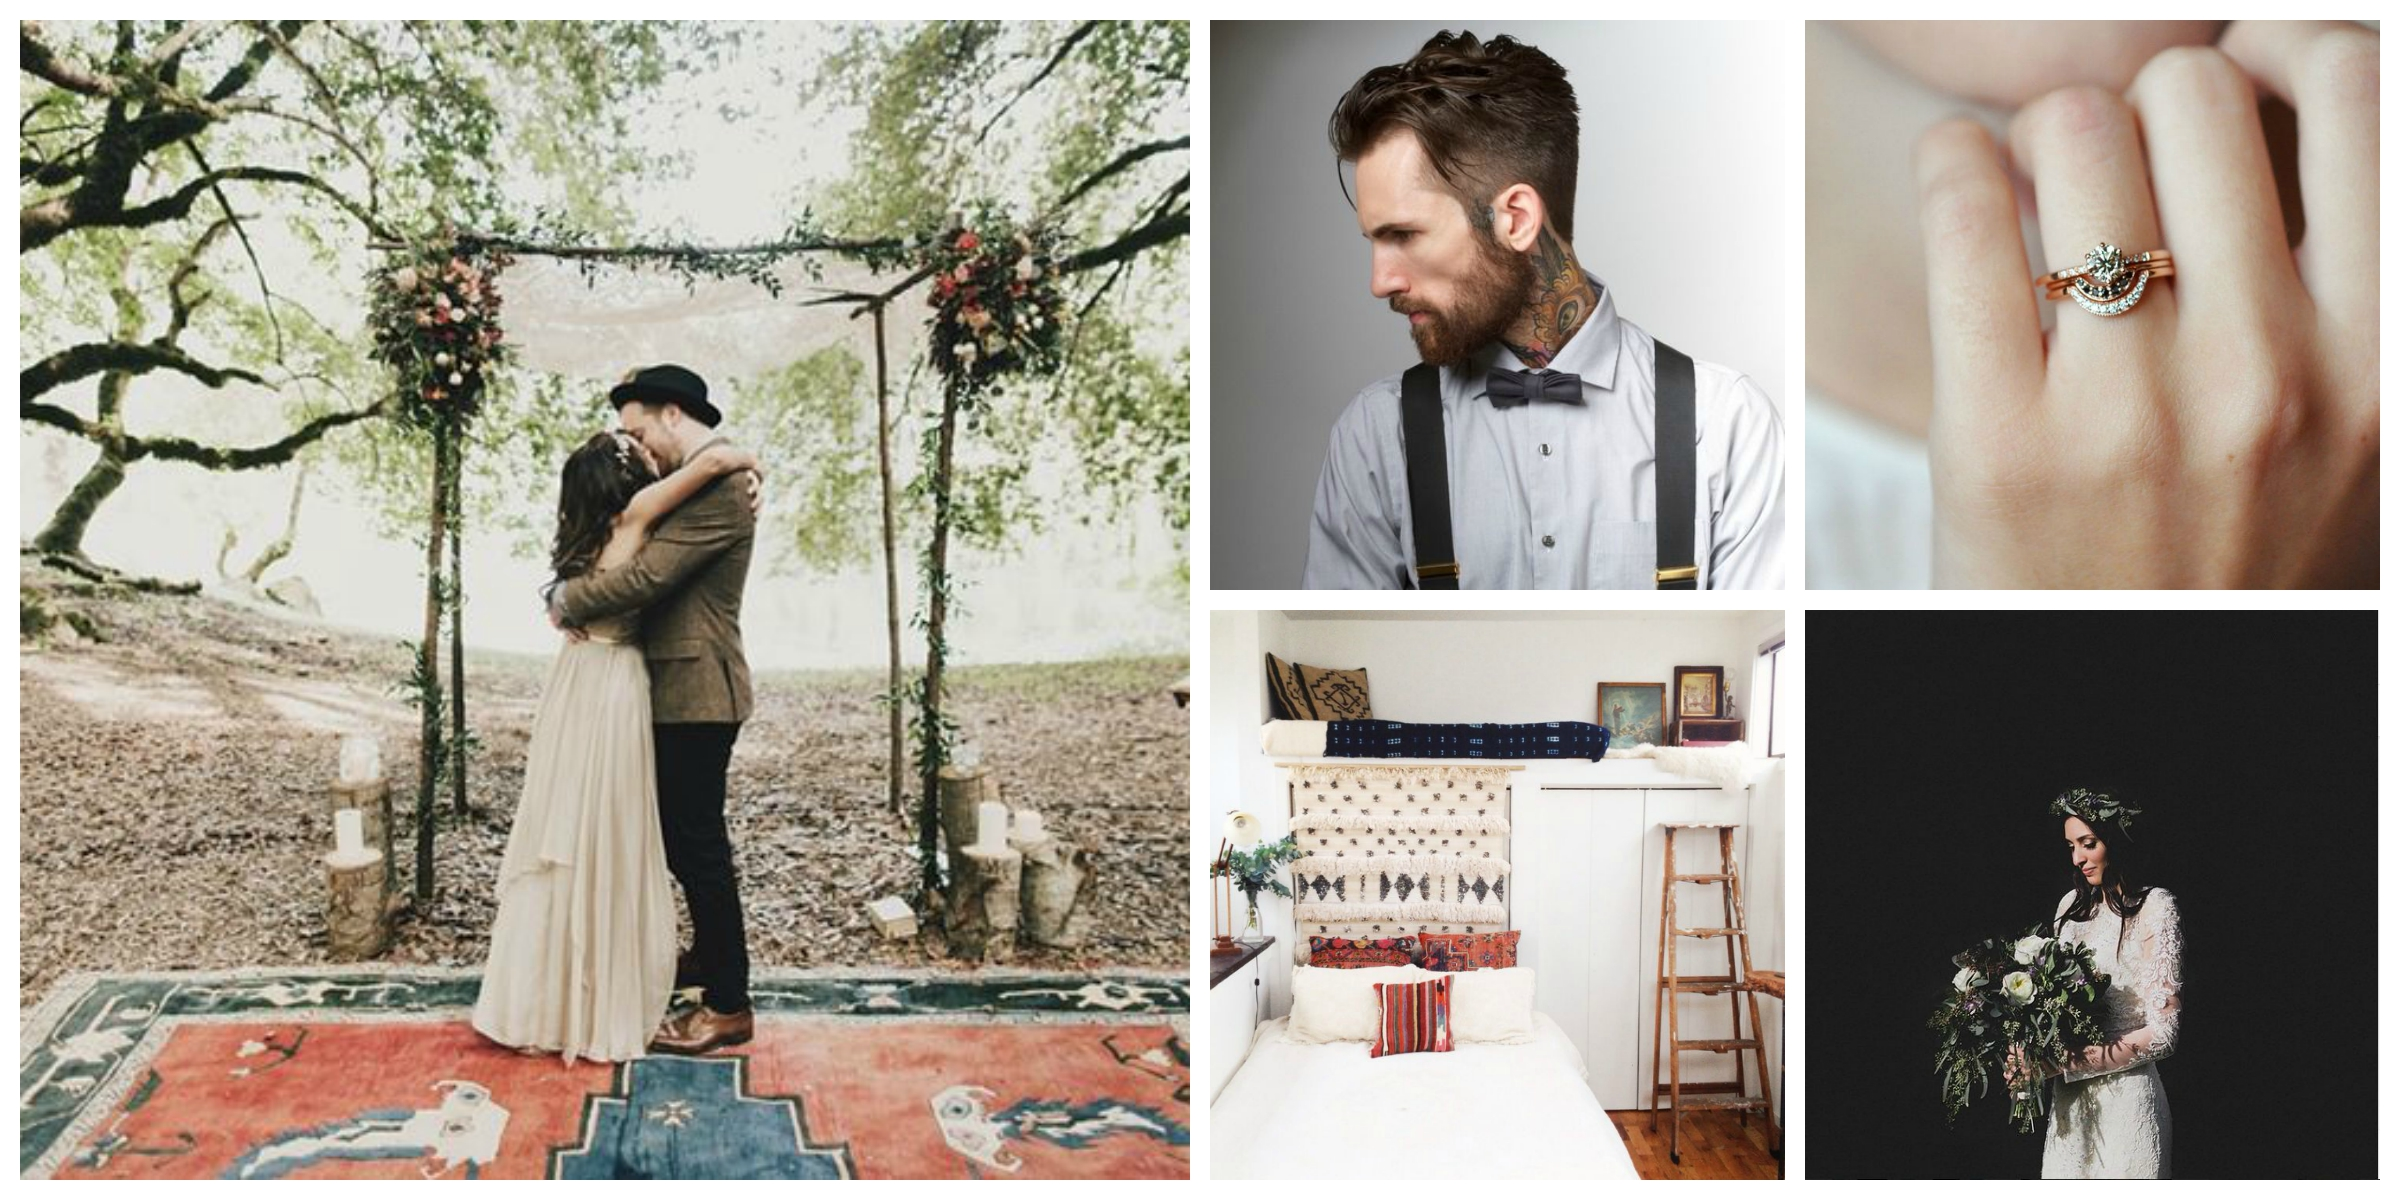 images i loved. my pinterest branding/couple/wedding ideas:left image by logan cole, clockwise credit from square images: weheartit, anna sheffield jewelry, tyler french and sfgirlbybay.